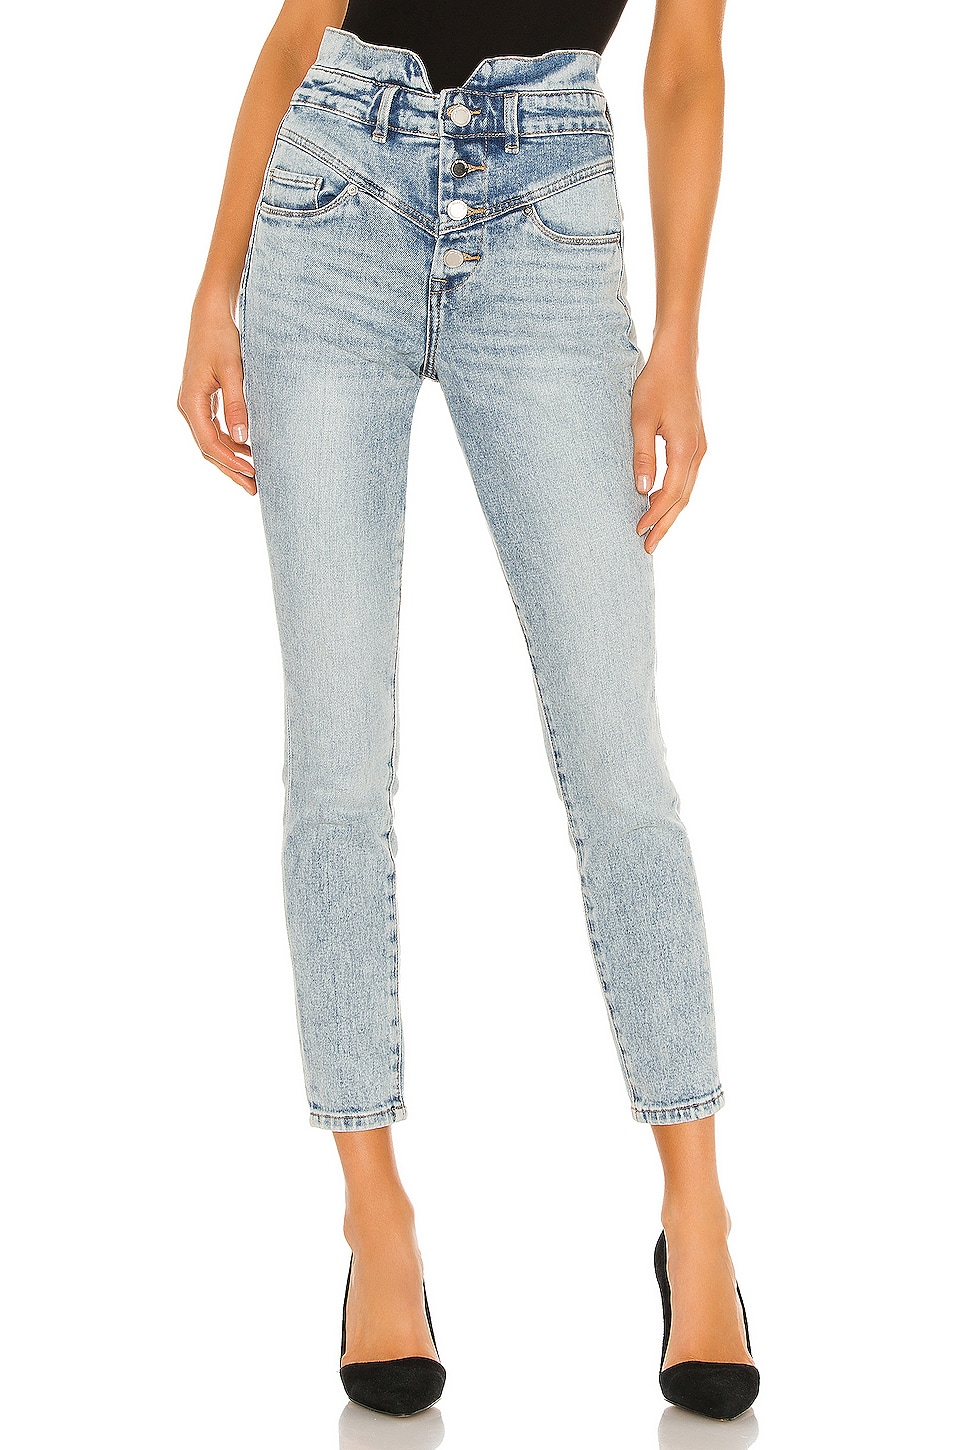 Exposed Button Skinny                   BLANKNYC                                                                                                                             CA$ 167.39 2